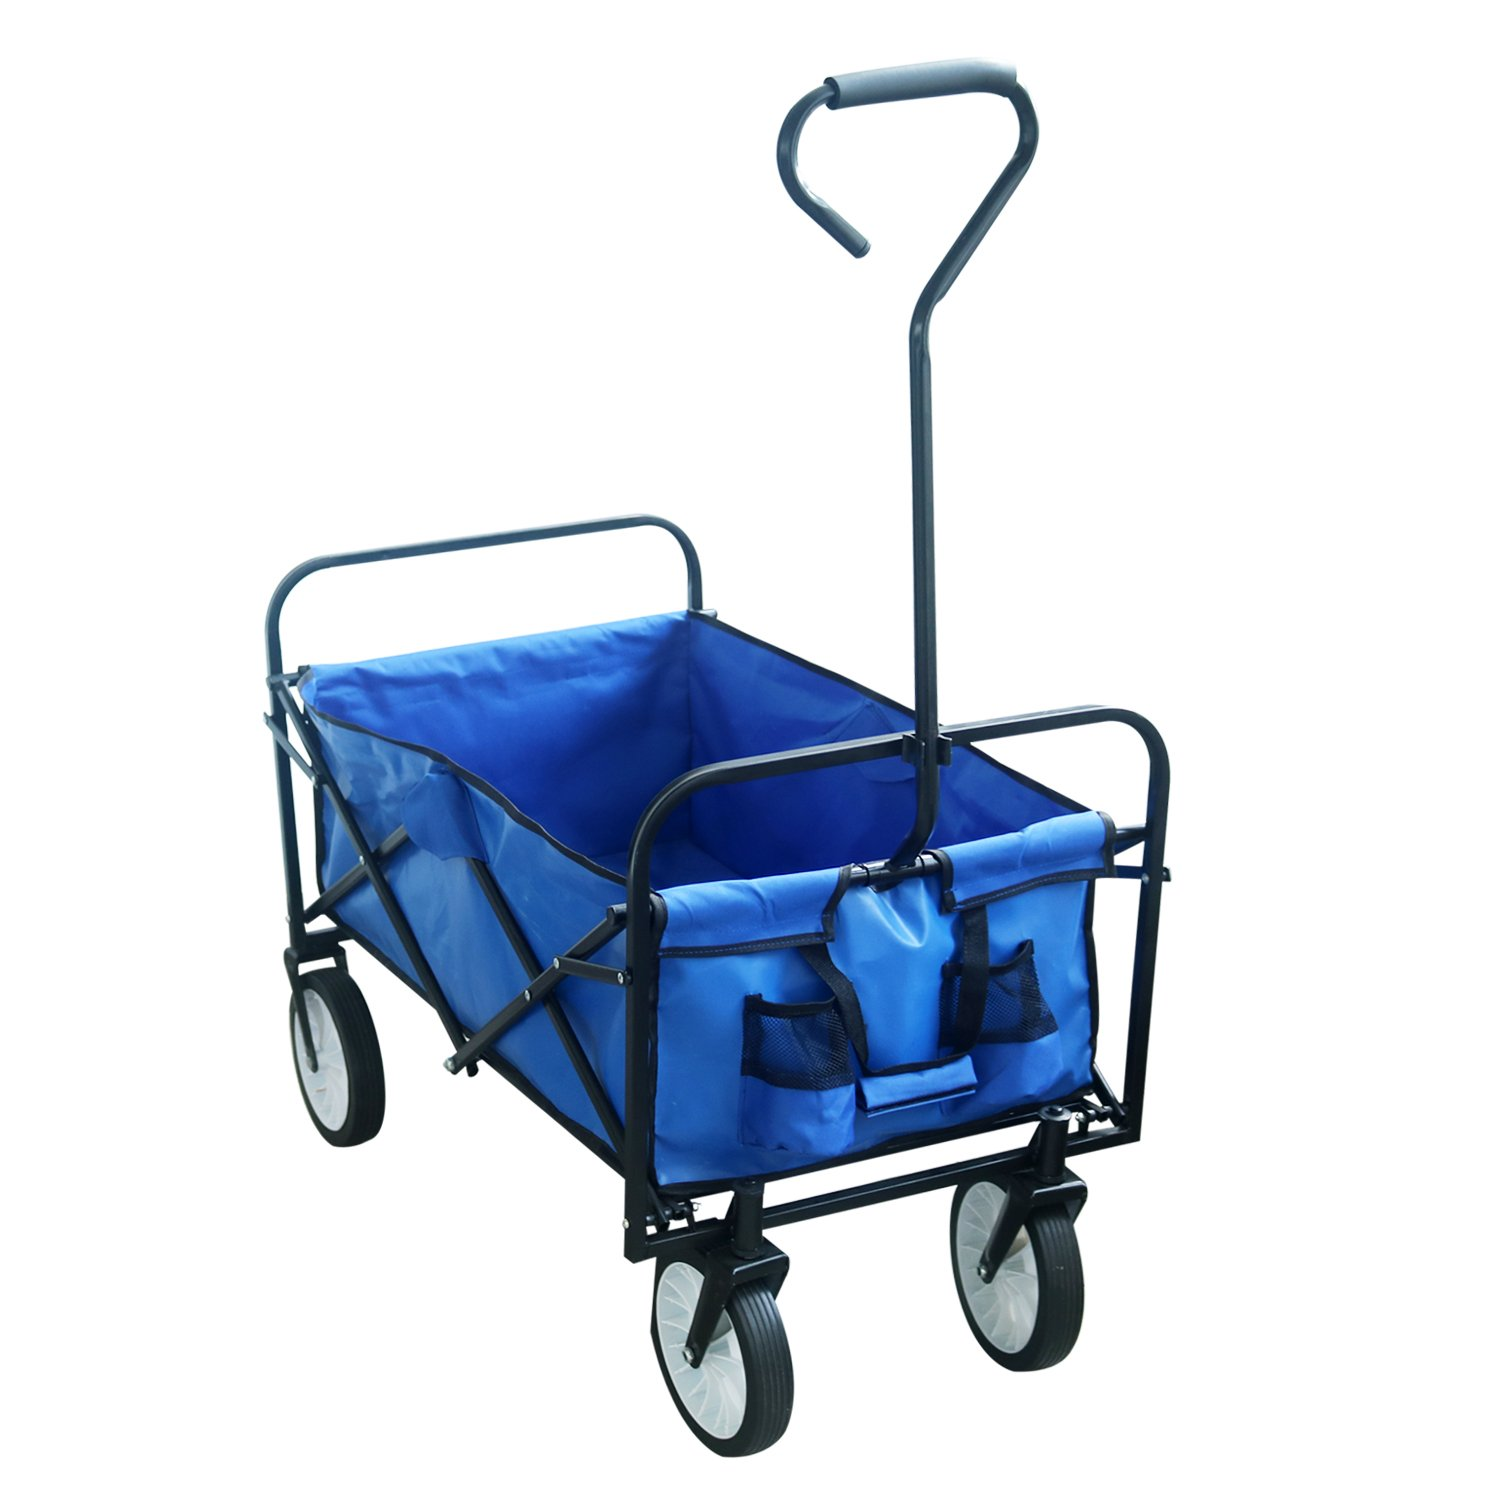 Best Sunshine Folding Wagon Cart Collapsible Utility Camping, Blue Folding Wagons with Drink Holders& Big Wheels Heavy Duty Beach Garden Sports